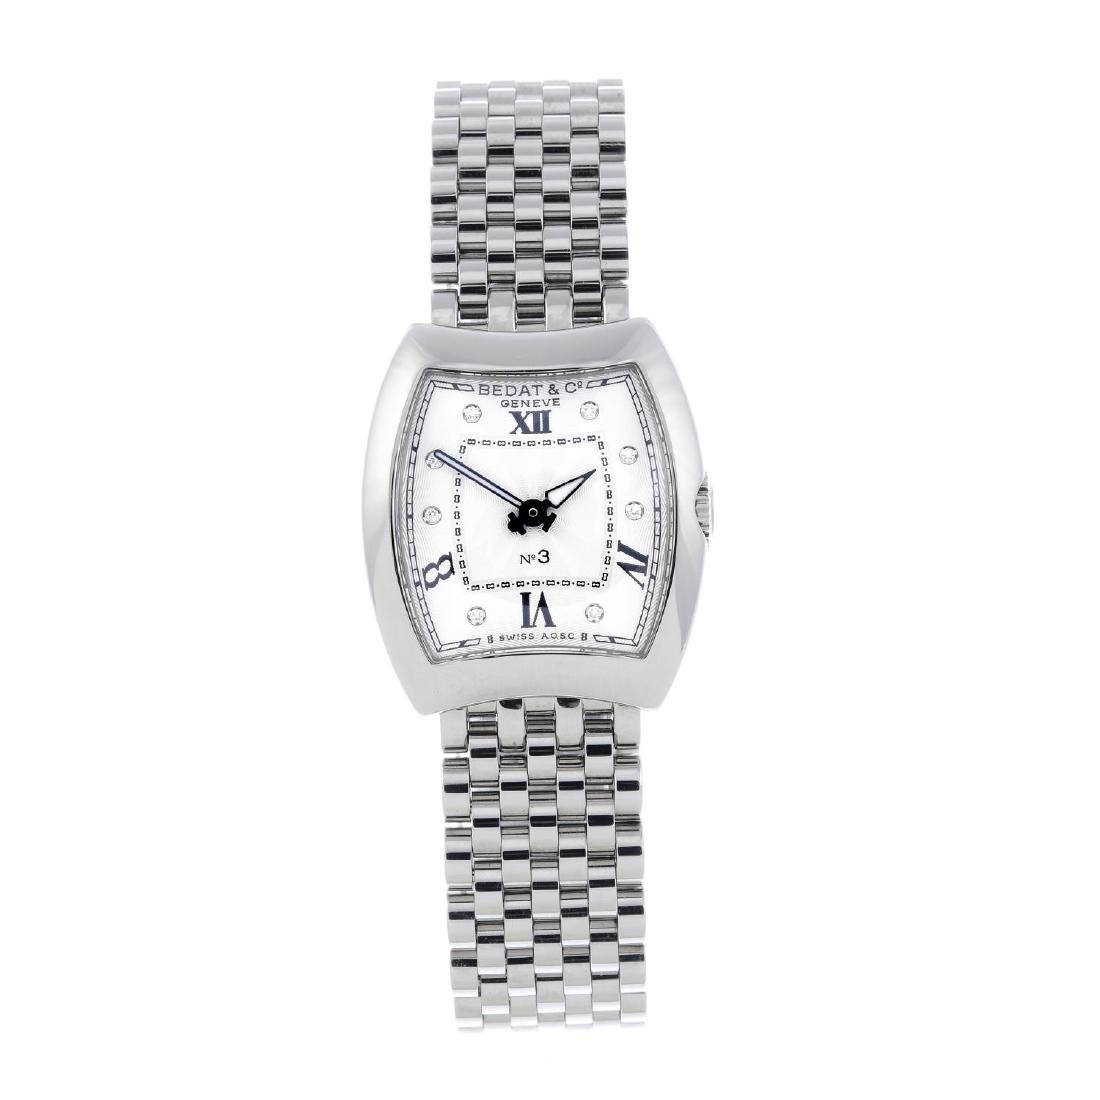 BEDAT & CO. - a lady's No. 3 bracelet watch. Stainless